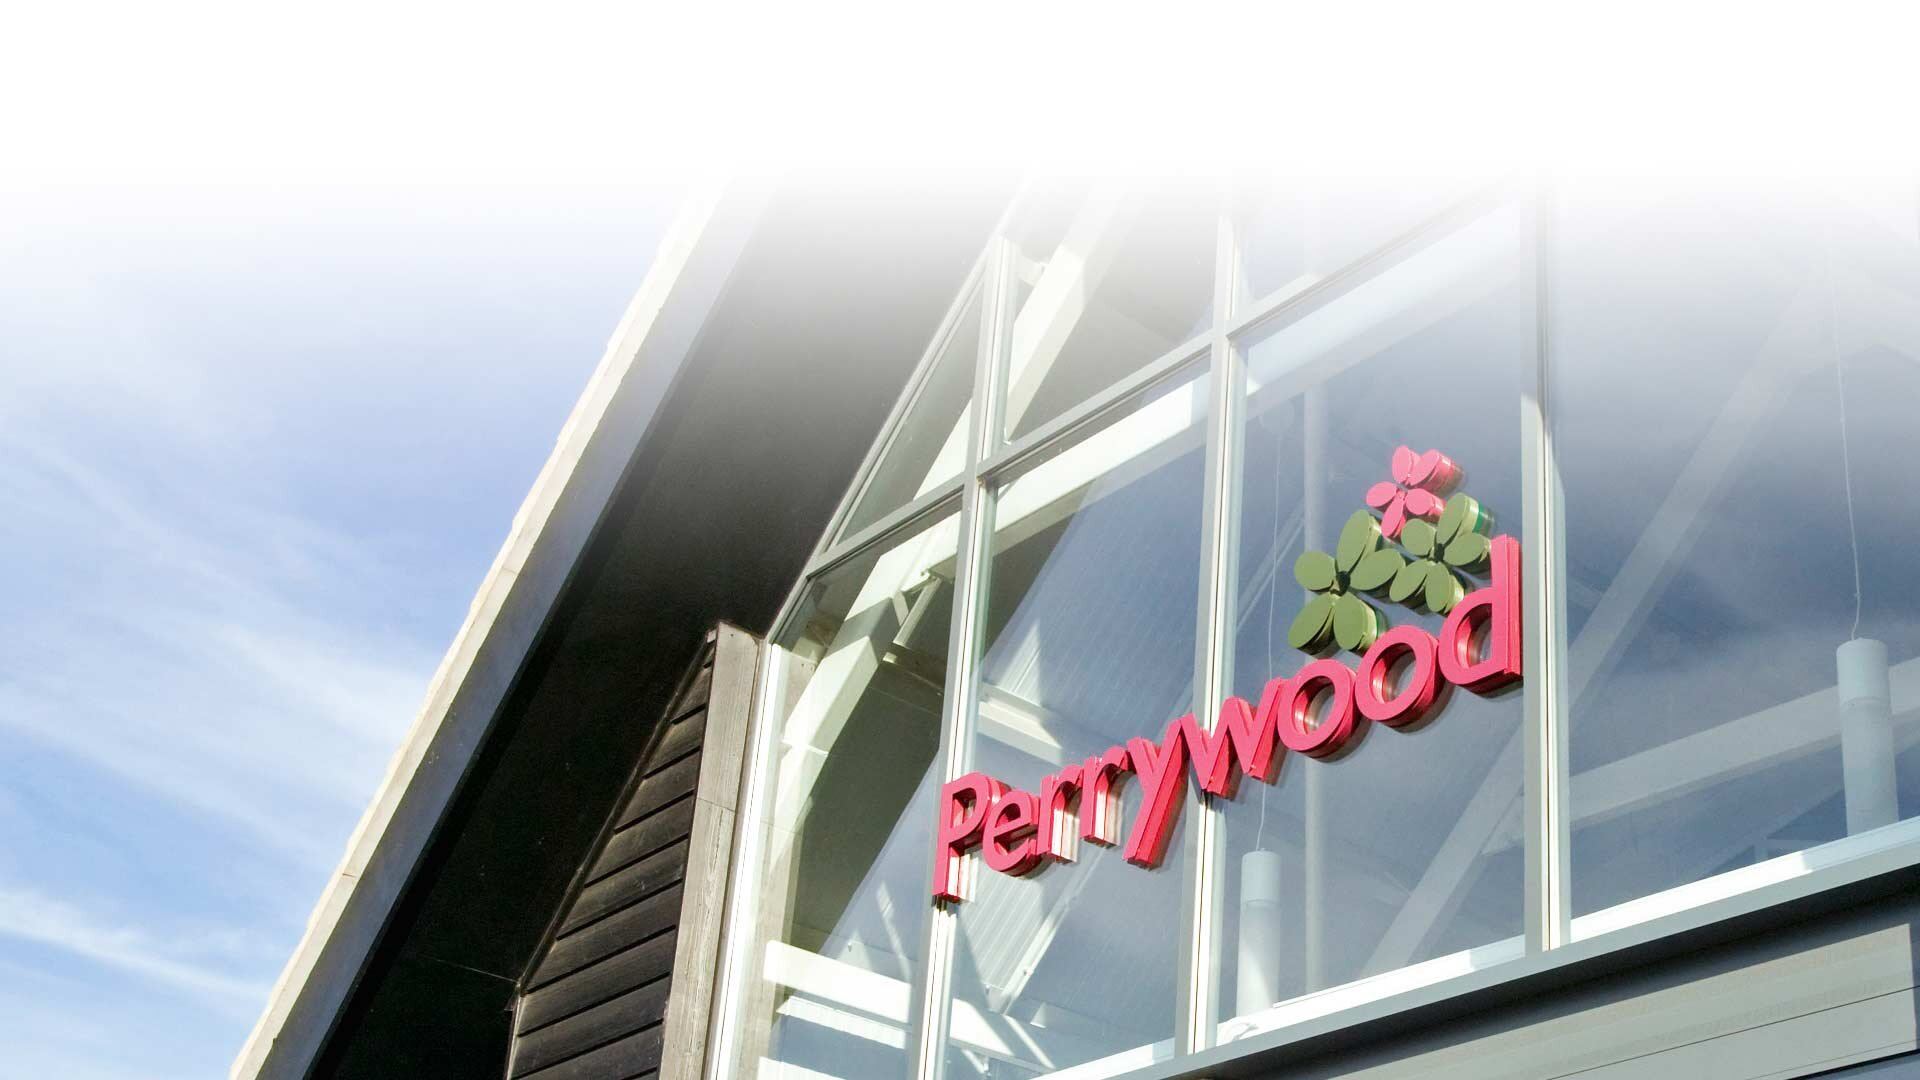 Referenz Perrywood